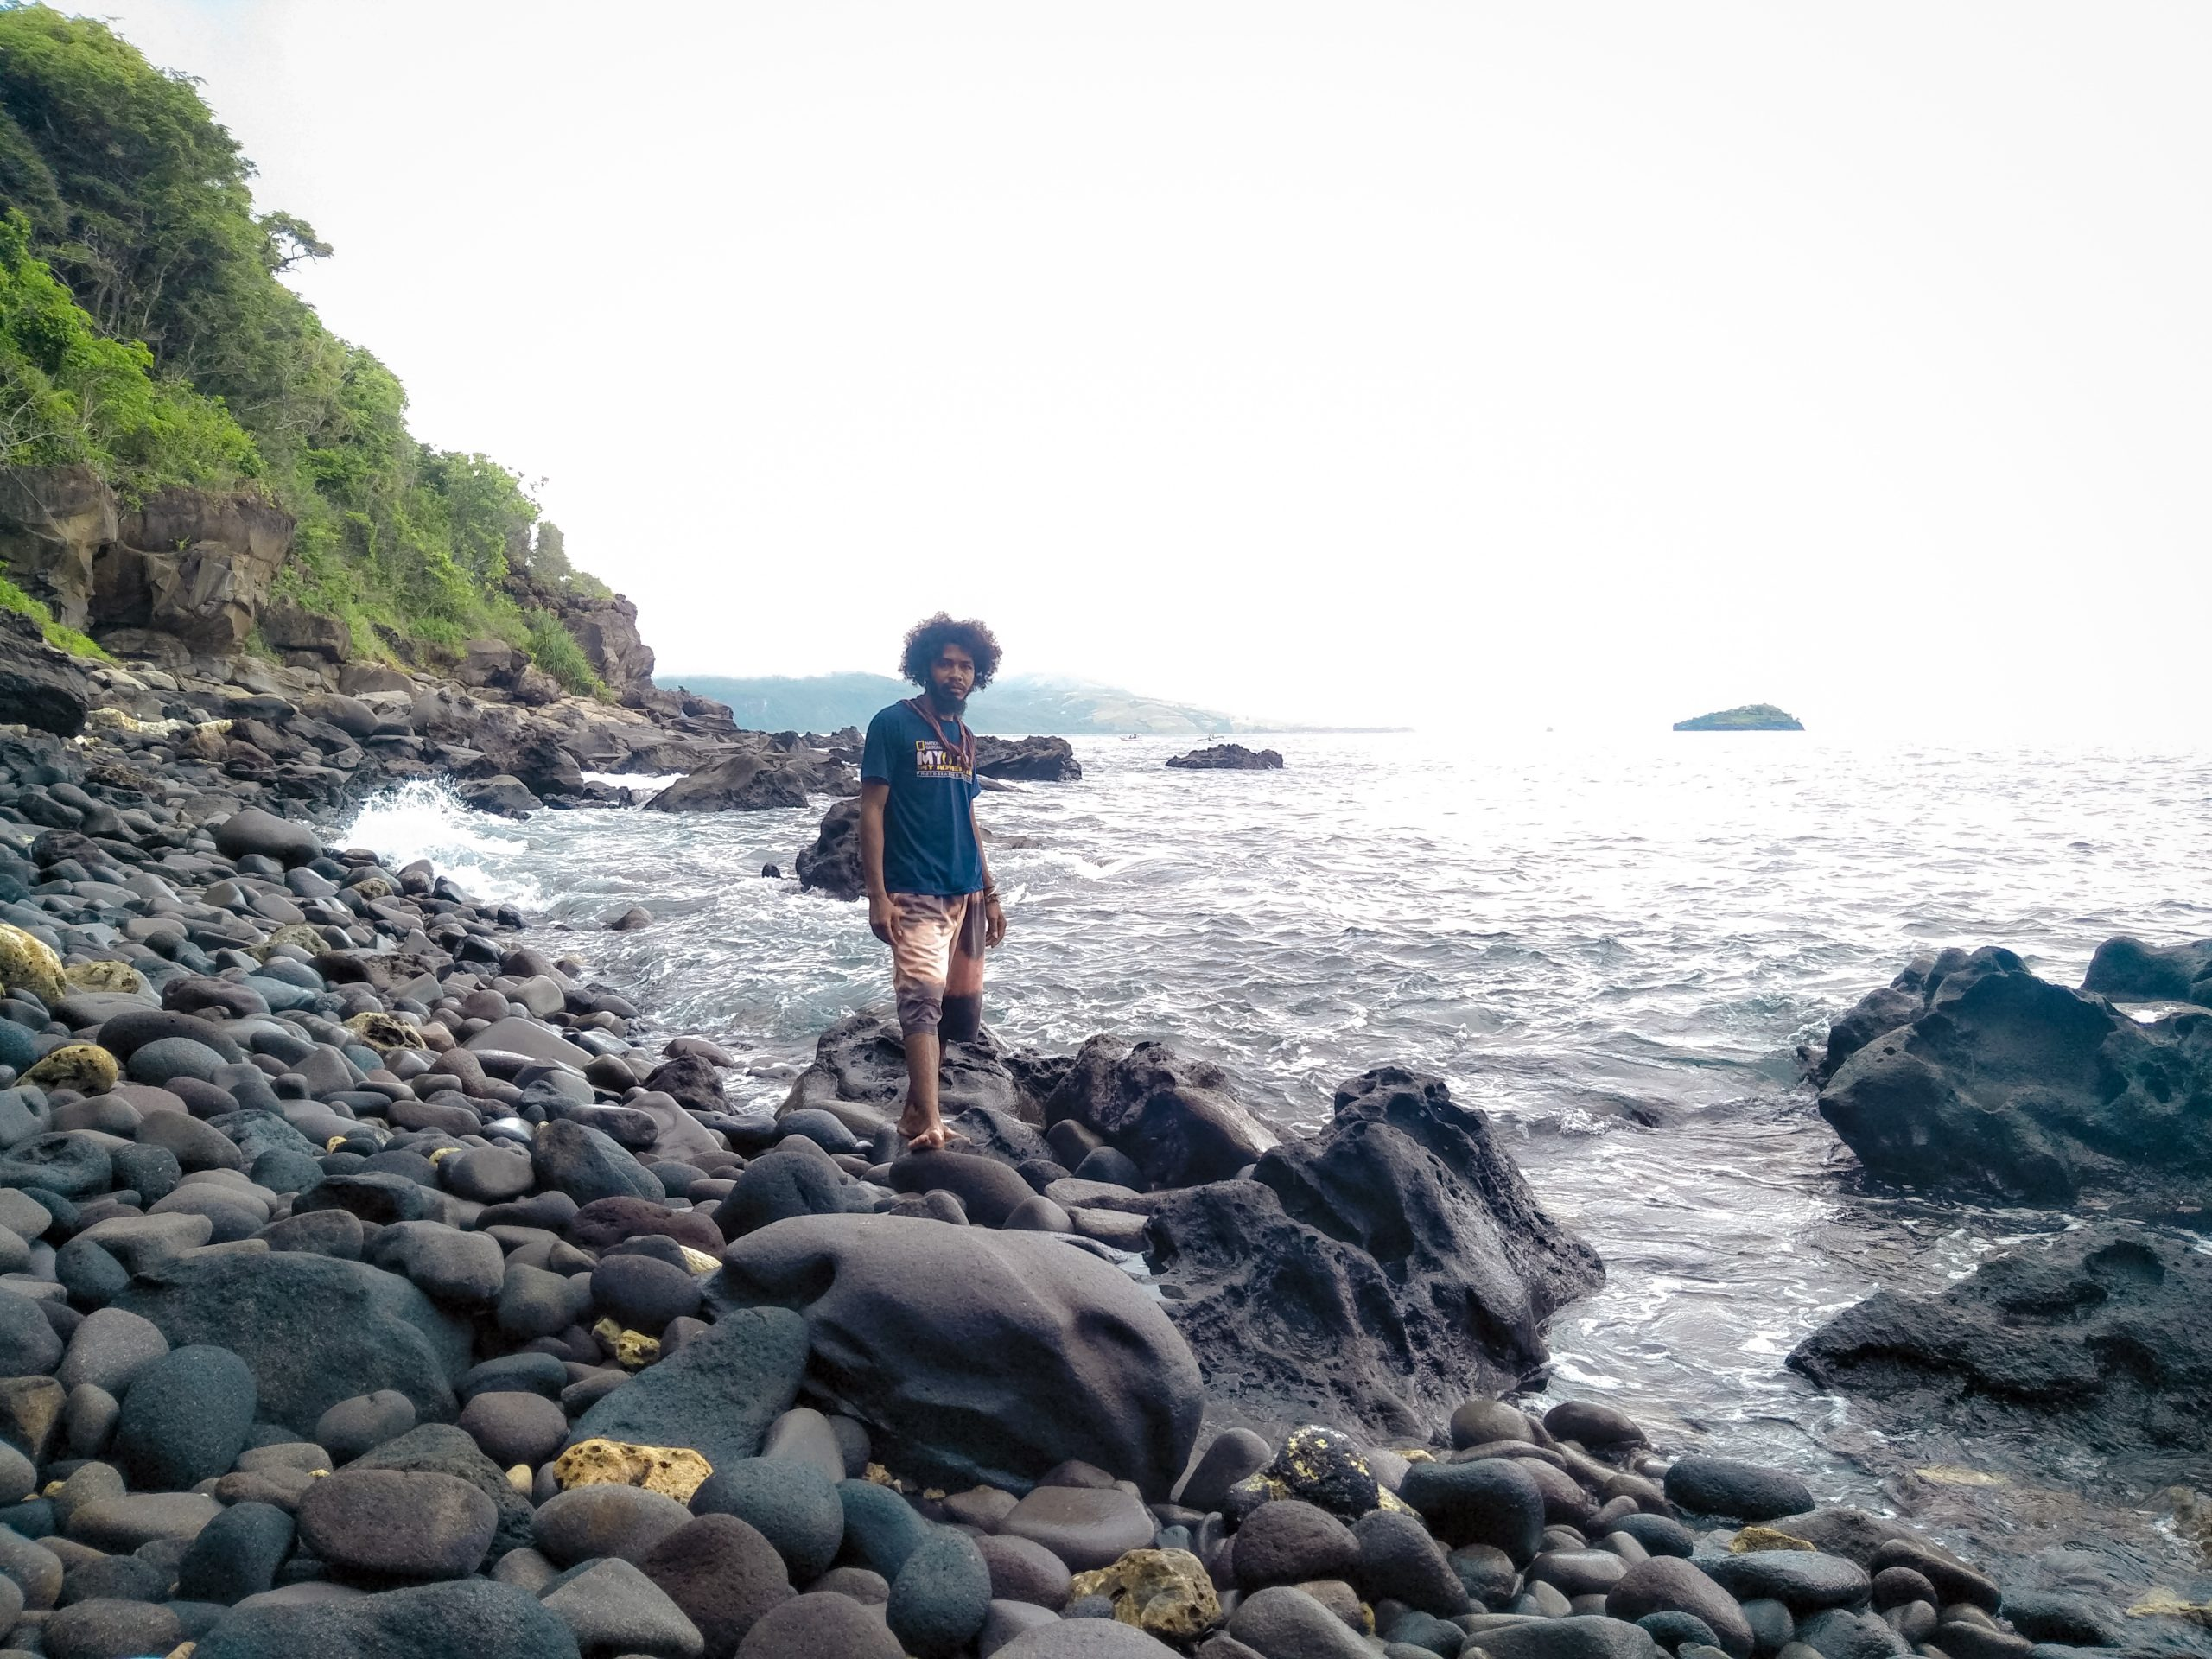 Come to Flores with Christian Peter and feel the exquisite beaches surround Flores Island.